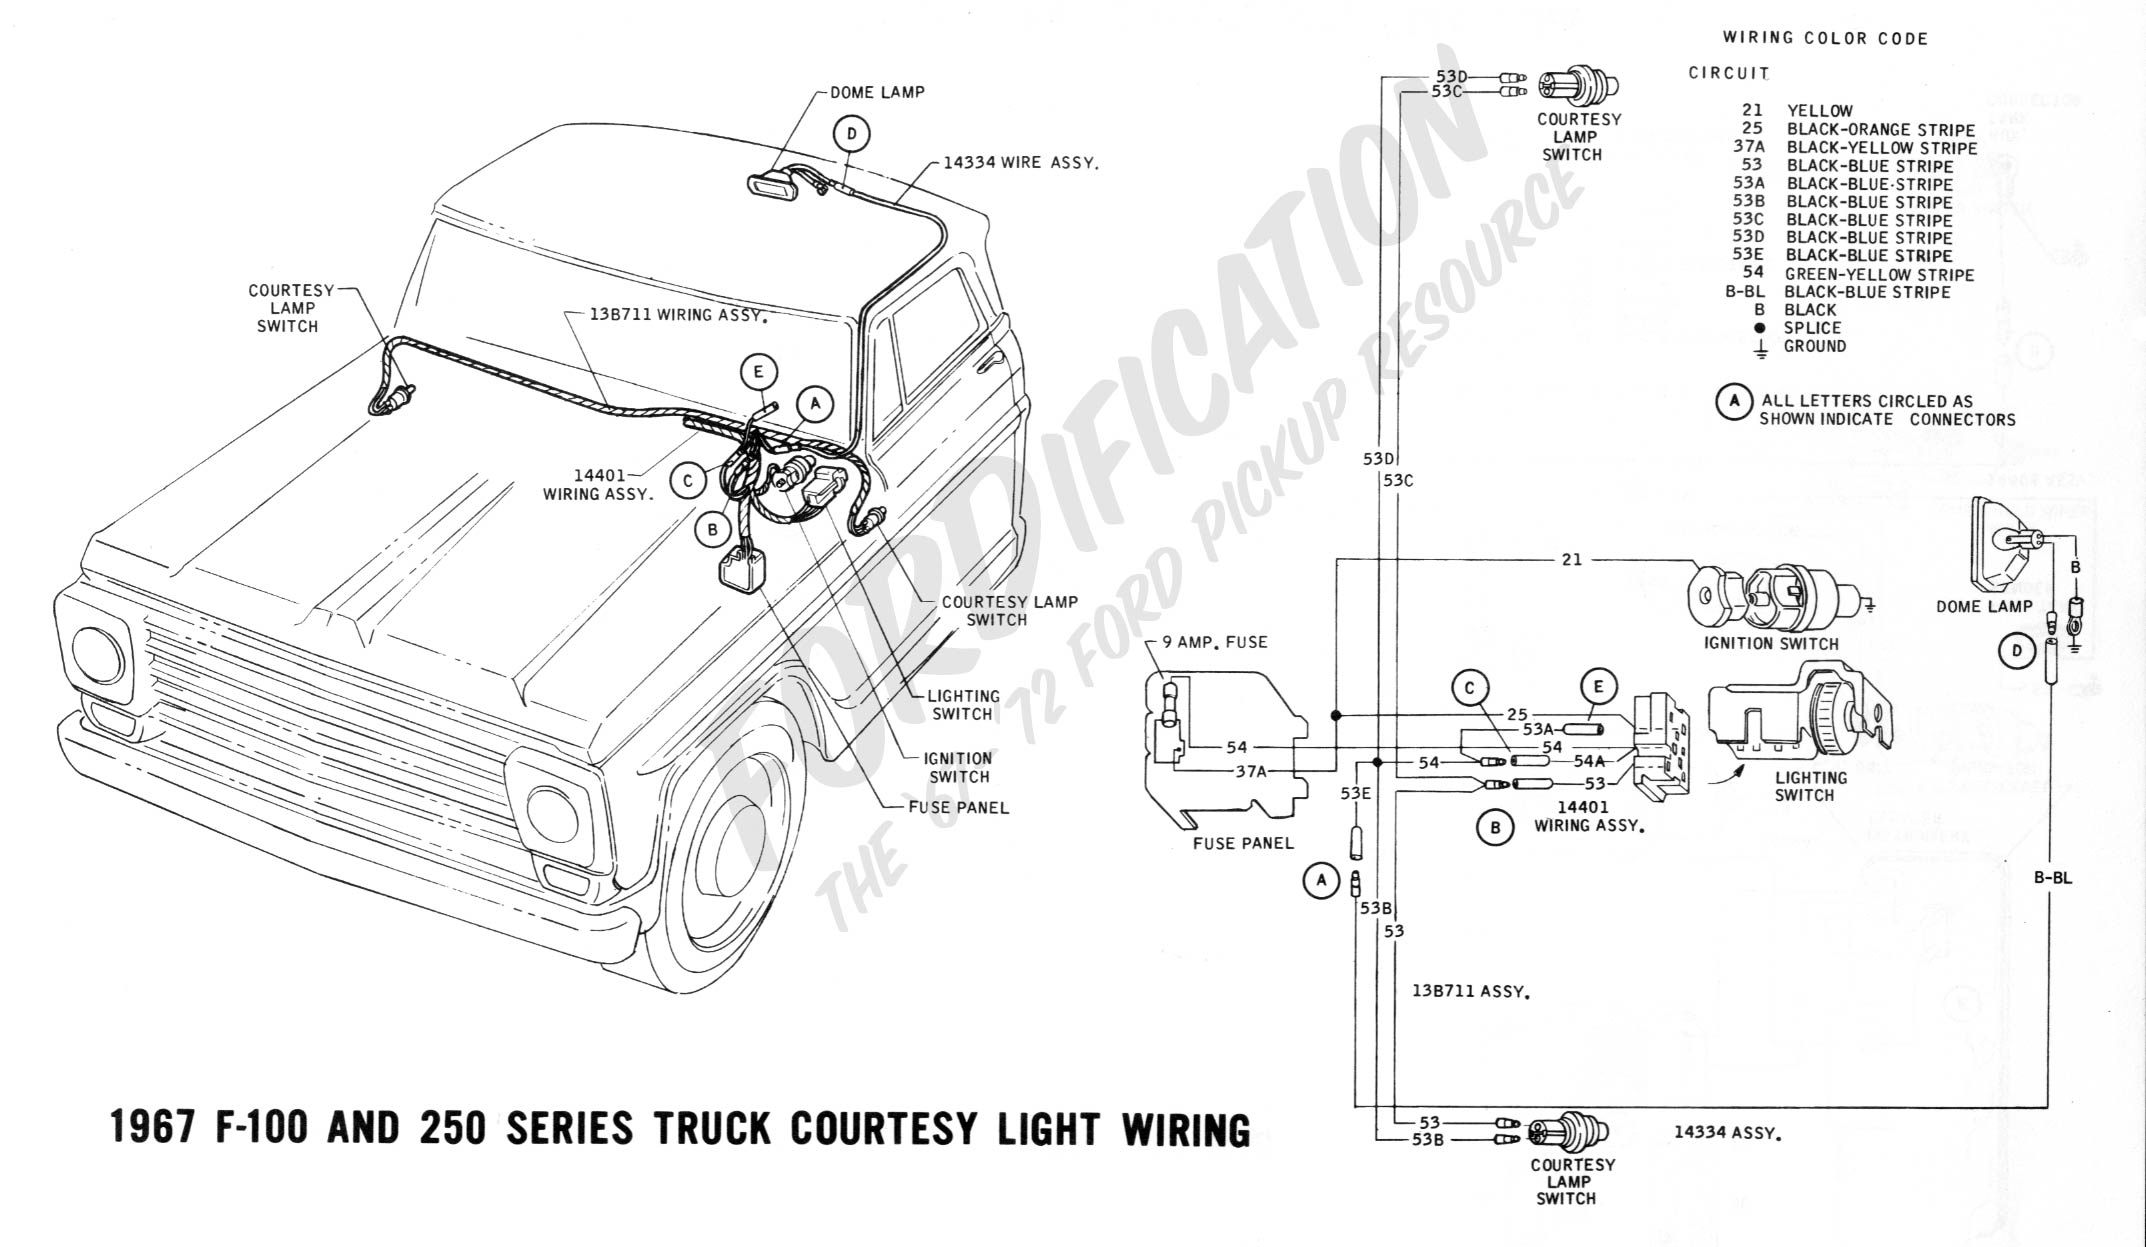 wiring 1967courtesylight ford truck technical drawings and schematics section h wiring door jamb switch wiring diagram at bakdesigns.co